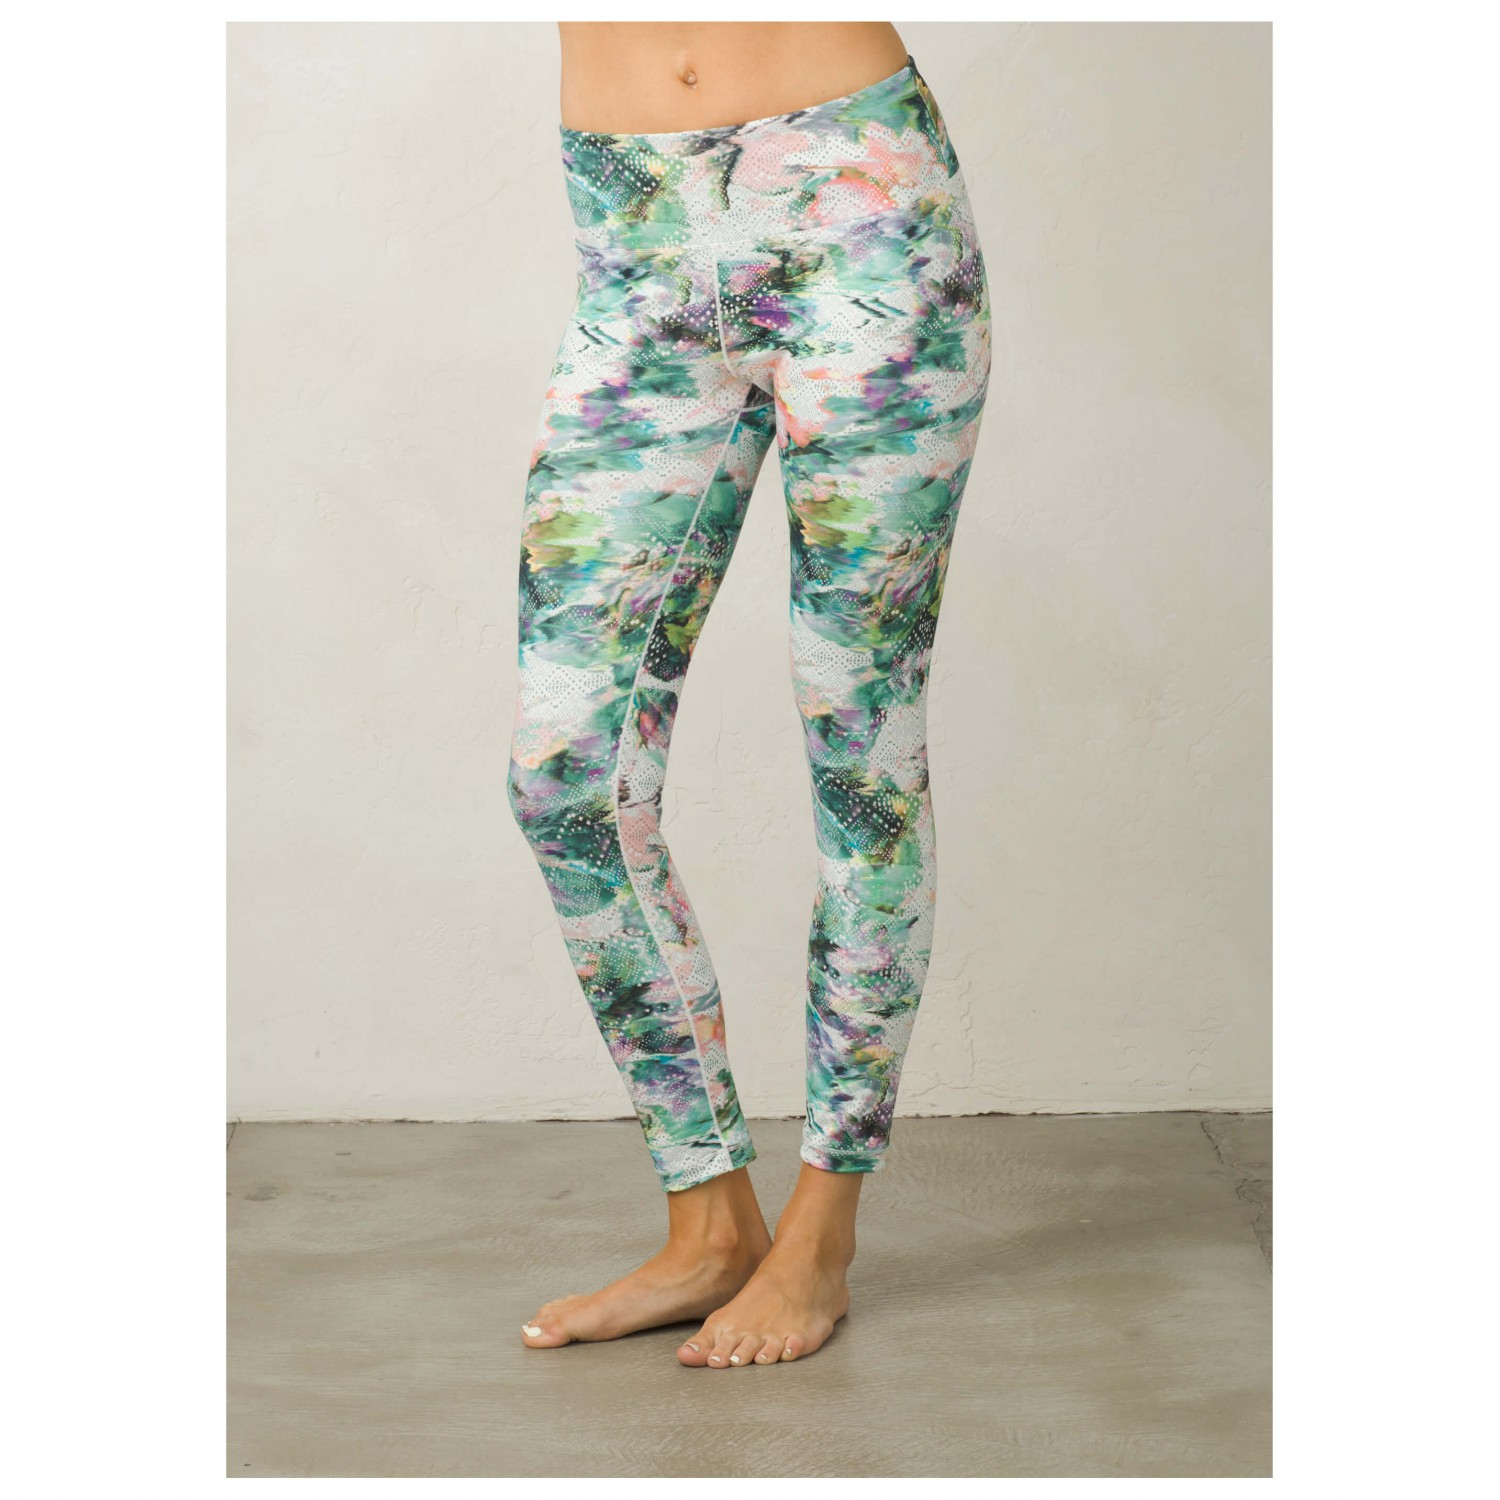 b026f70c11e3a Prana Pillar Printed Legging - Leggings Women's | Free UK Delivery ...